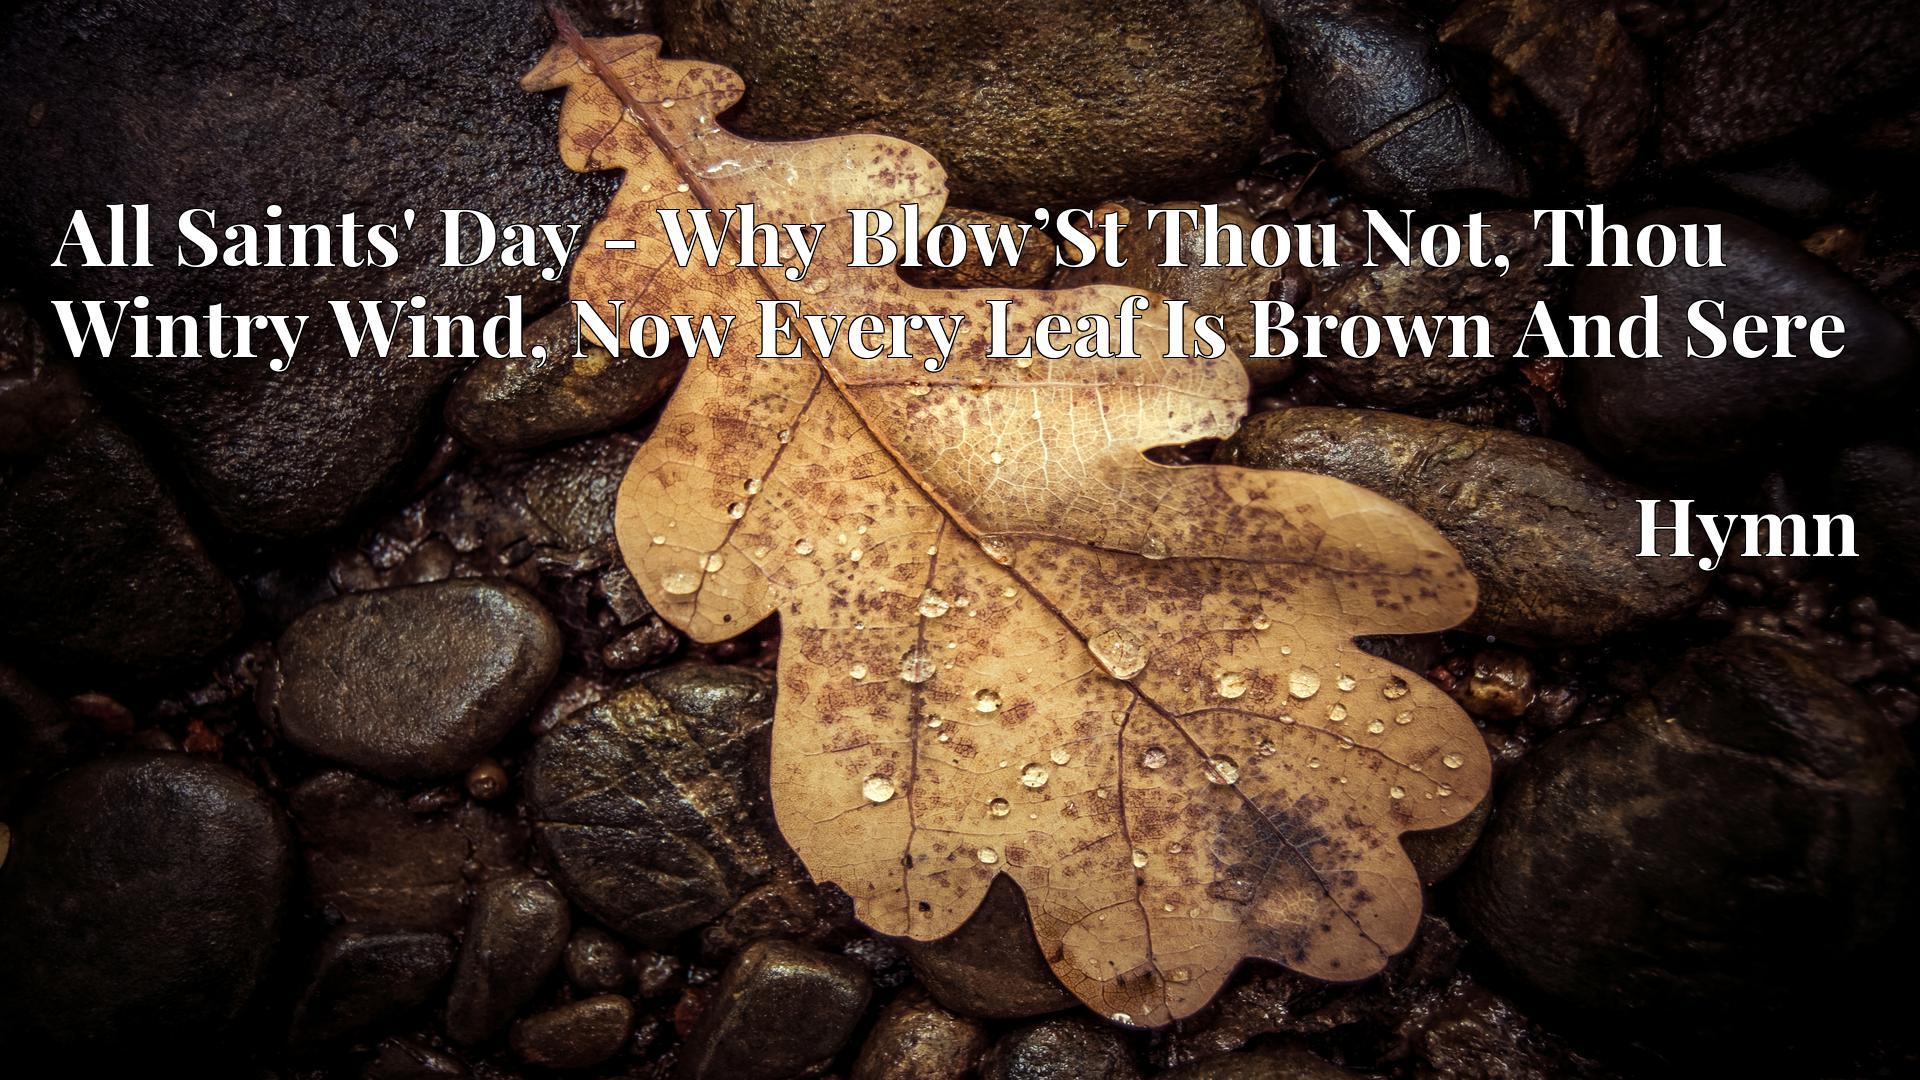 All Saints' Day - Why Blow'St Thou Not, Thou Wintry Wind, Now Every Leaf Is Brown And Sere Hymn